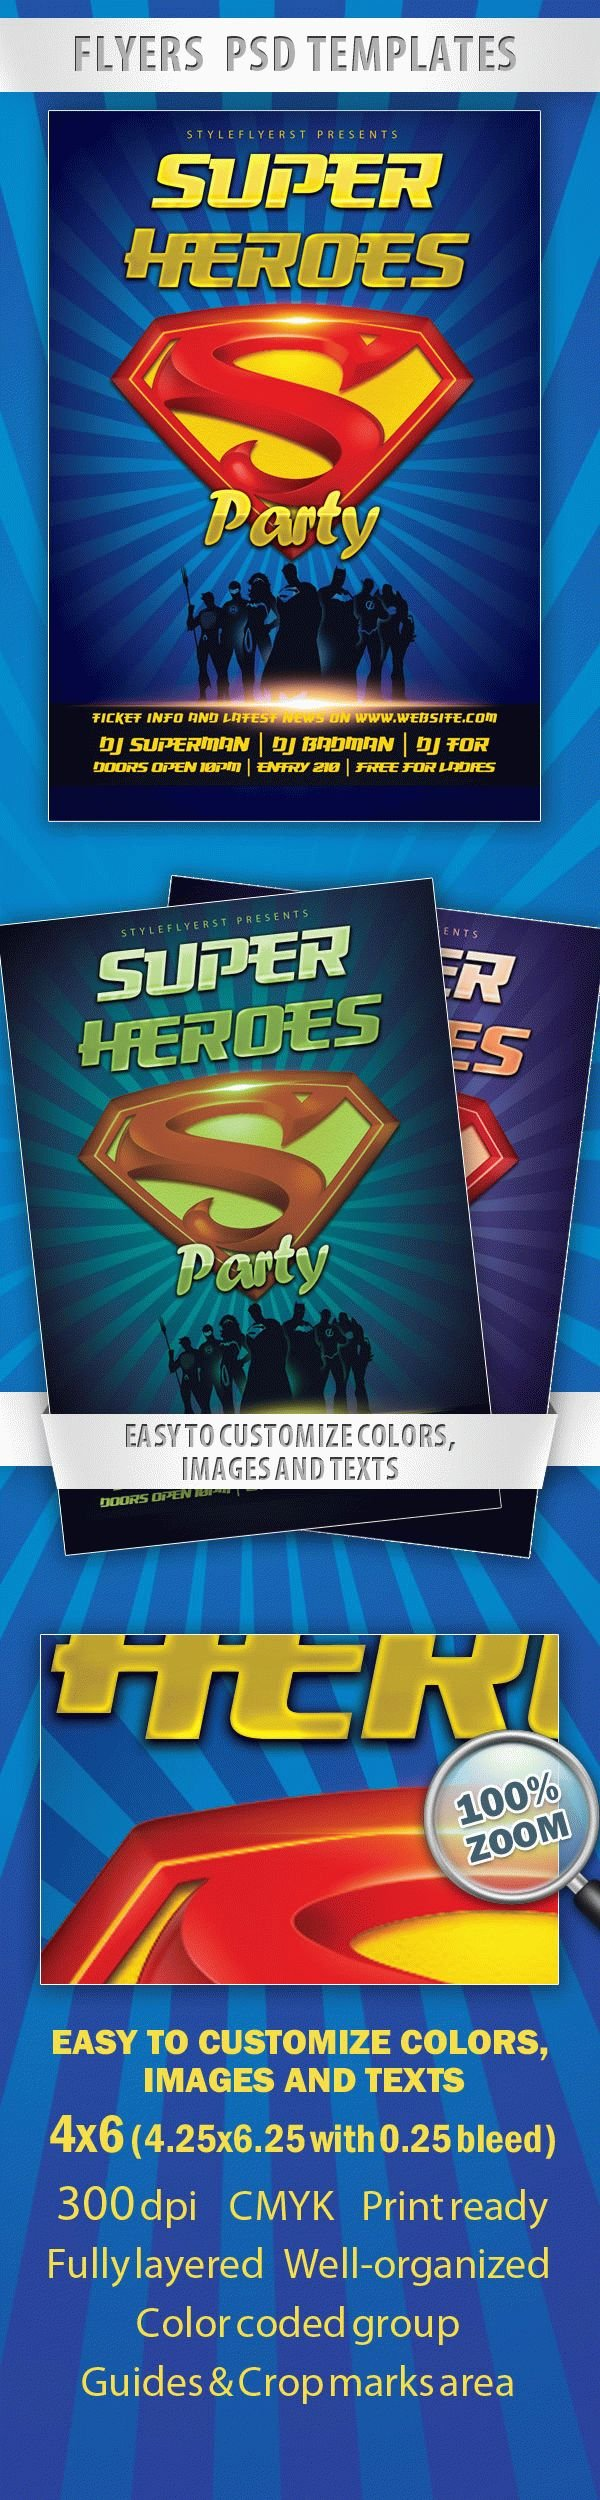 Superheroes Party Flyer